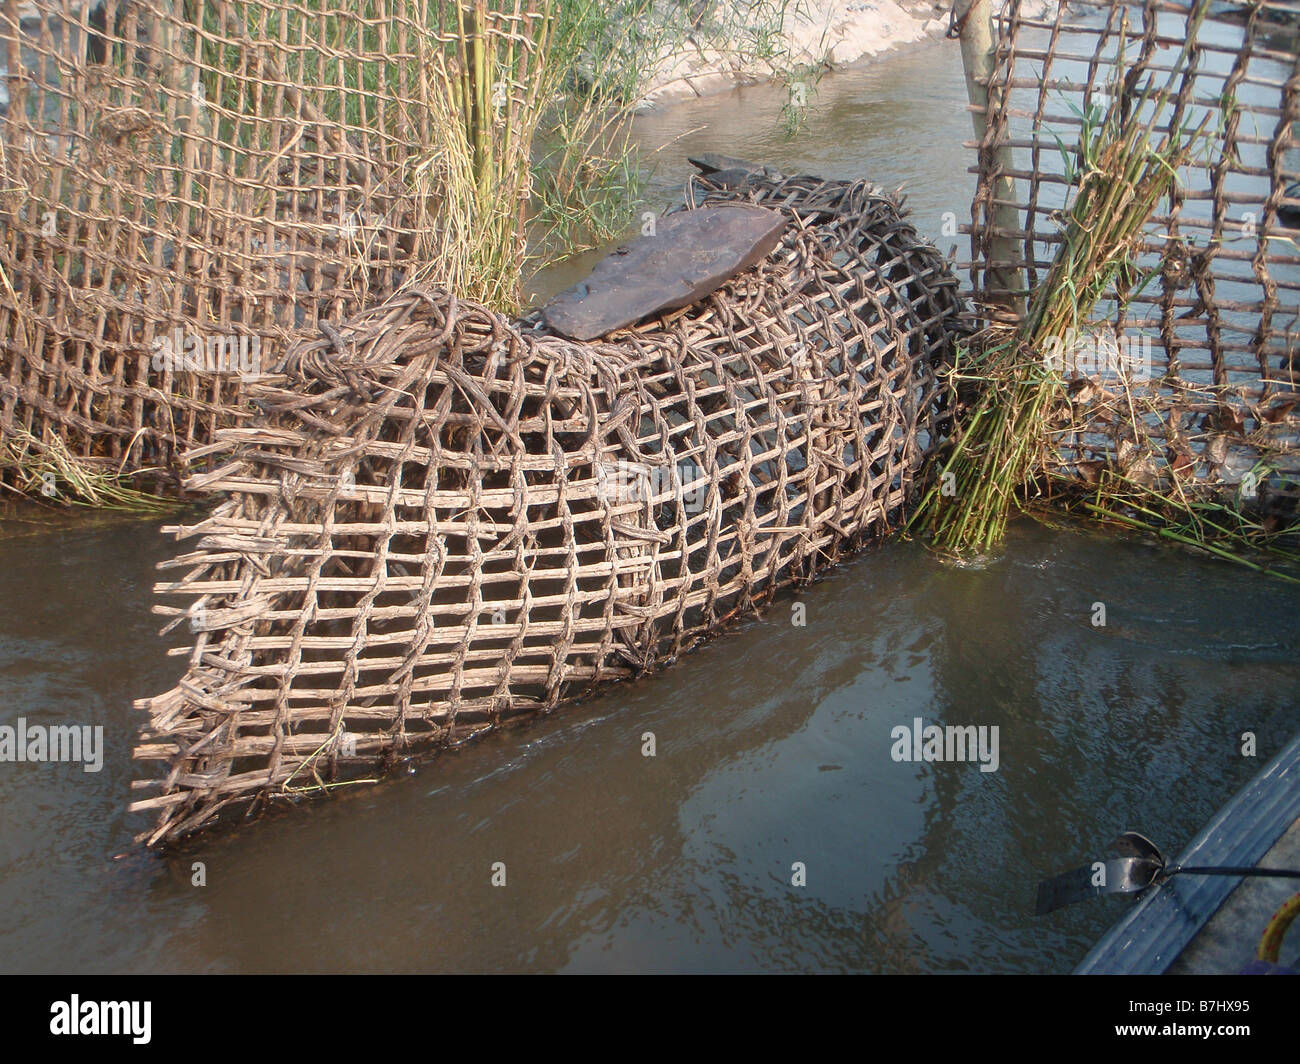 Bank Rattan Conical Fish Traps Of Rattan Palm Leaves And Wood In Bank Of